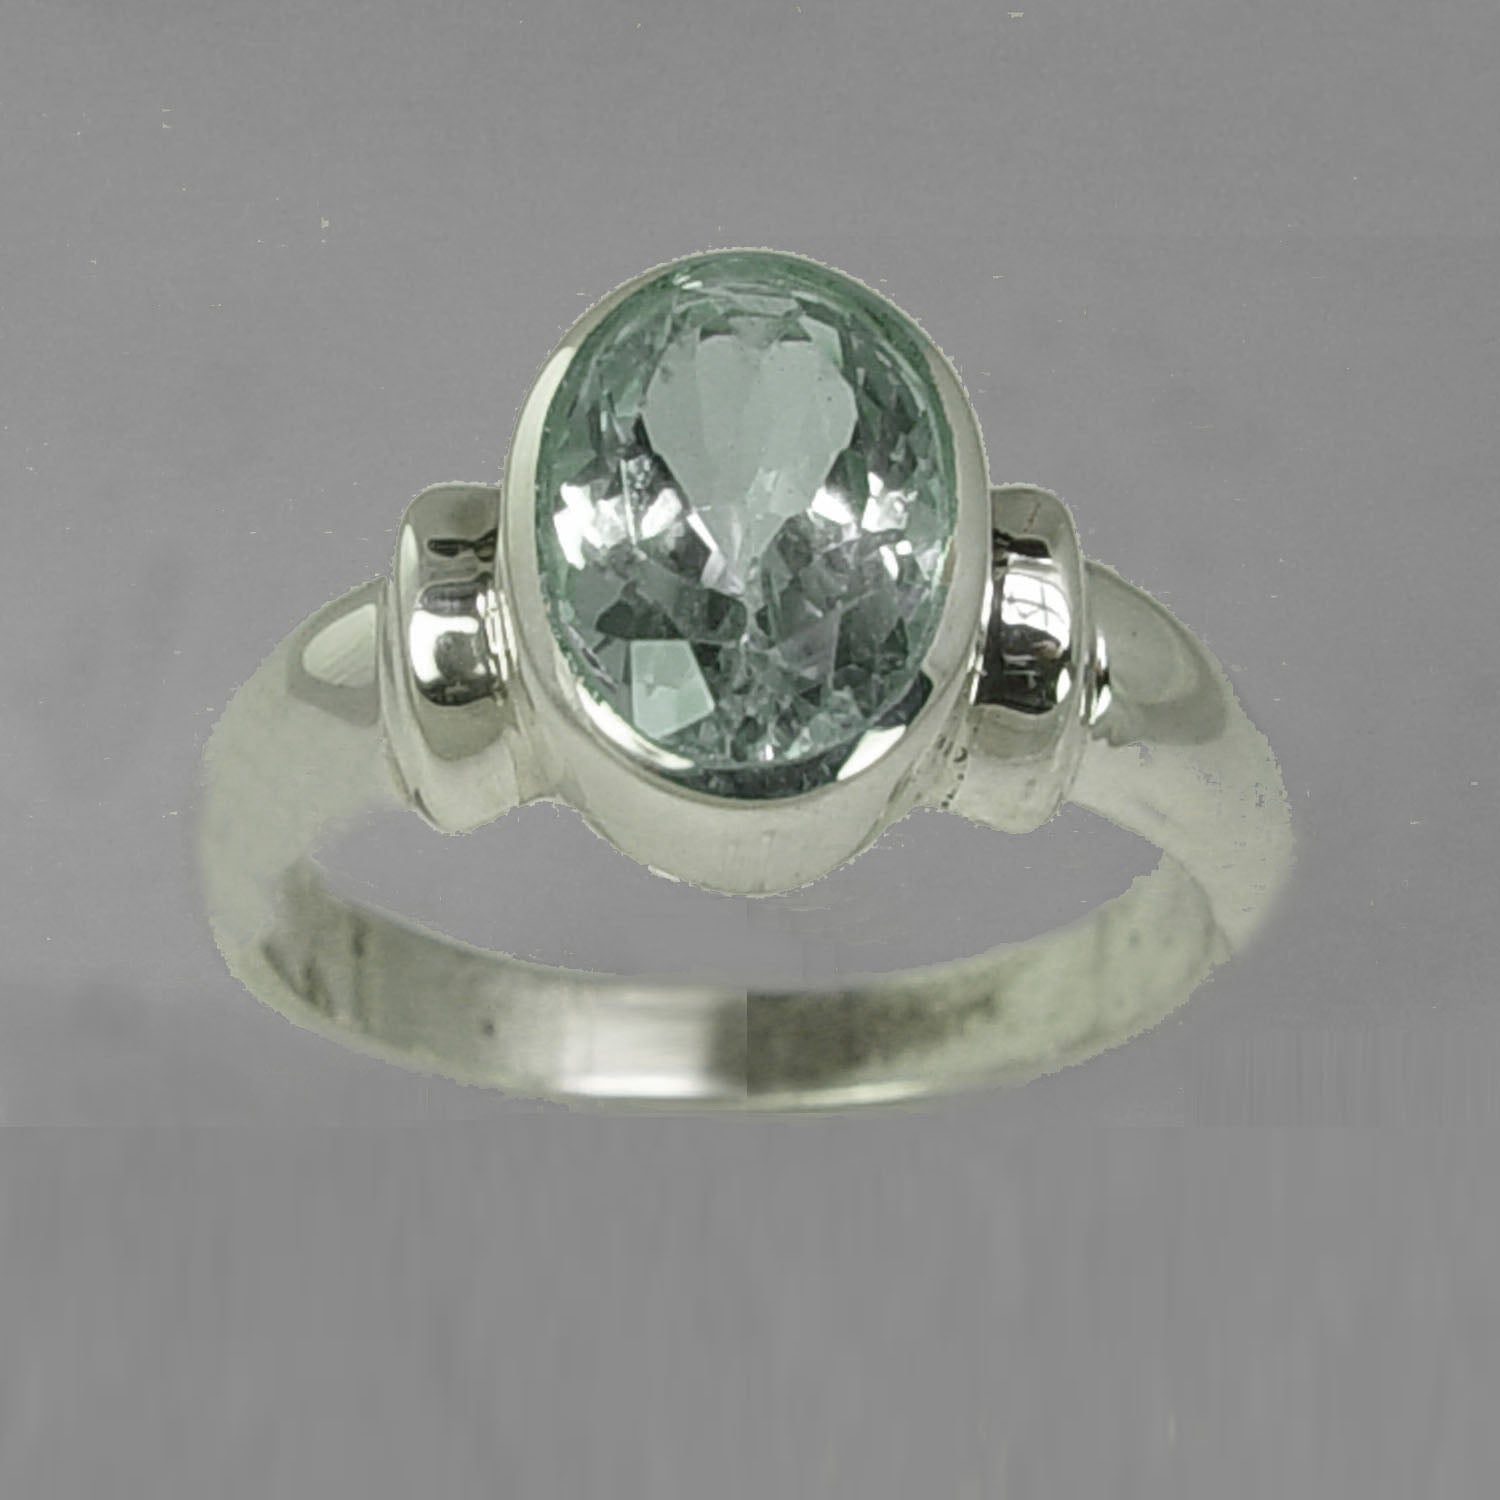 Aquamarine 3 ct Oval Bezel Set Sterling Silver Shoulder Shank Ring, Size 7